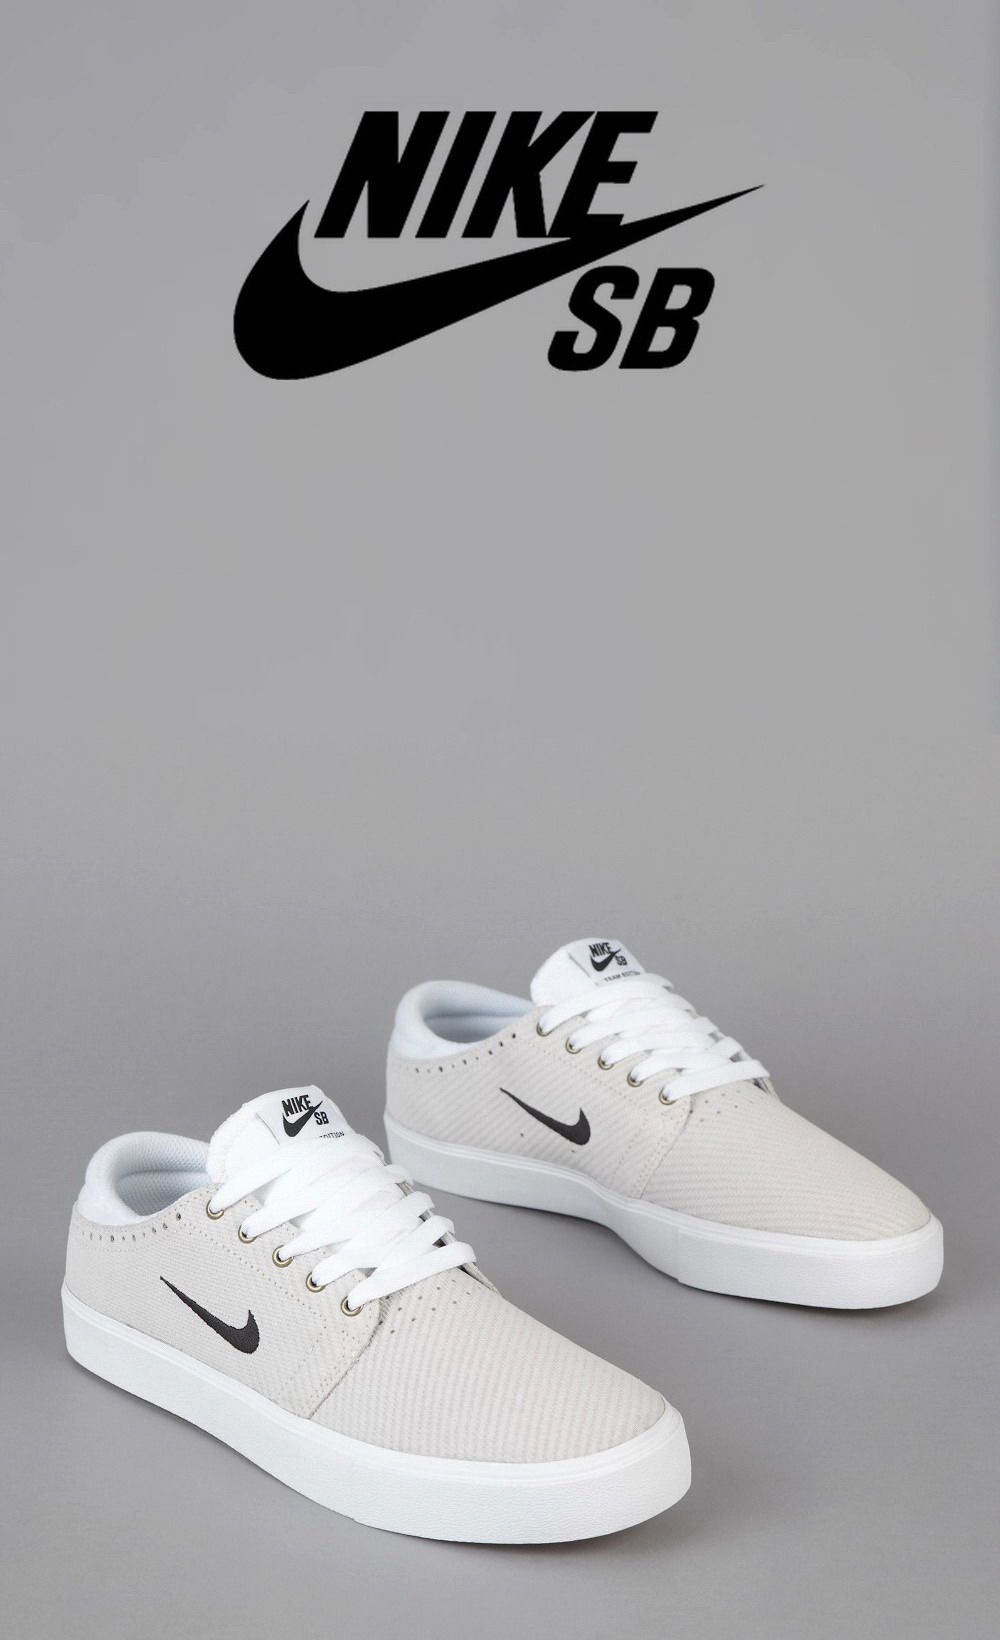 big sale 6f2fb 426e0 it is so beautiful and exquisite mens nike free,nike mens shoes,2011 nike  air max,get one nike shoes only  21,nike mens shoes